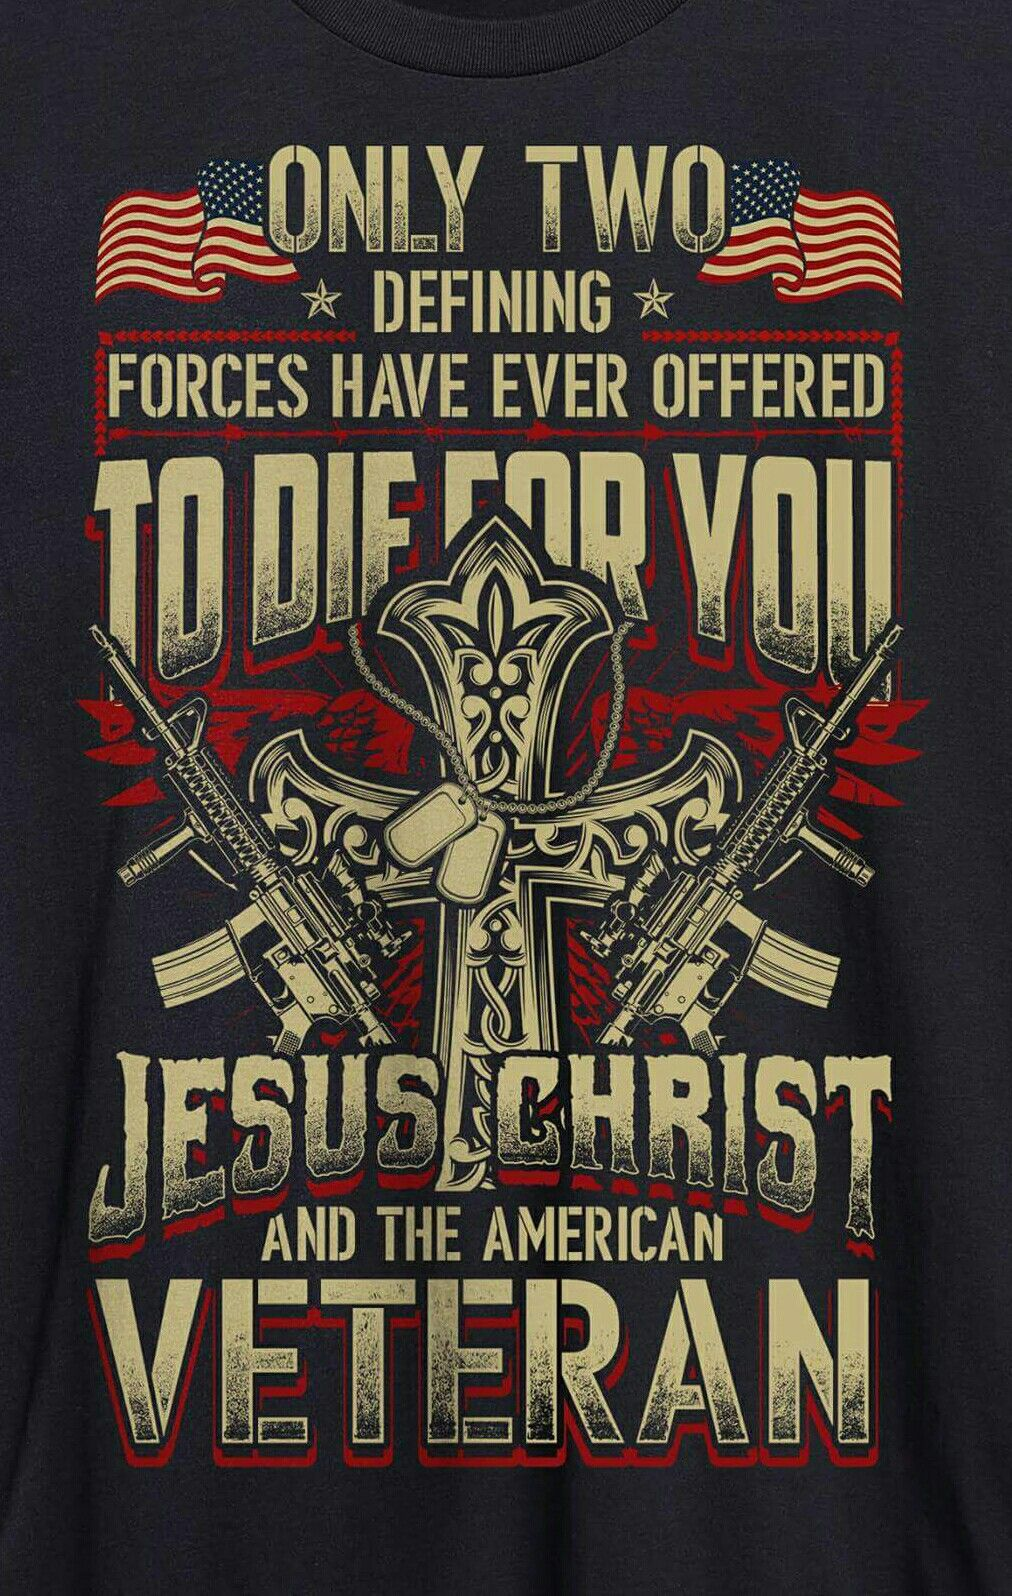 Jesus christ and the american veteran god bless our vets god bless our troops and god bless america 🇺🇸